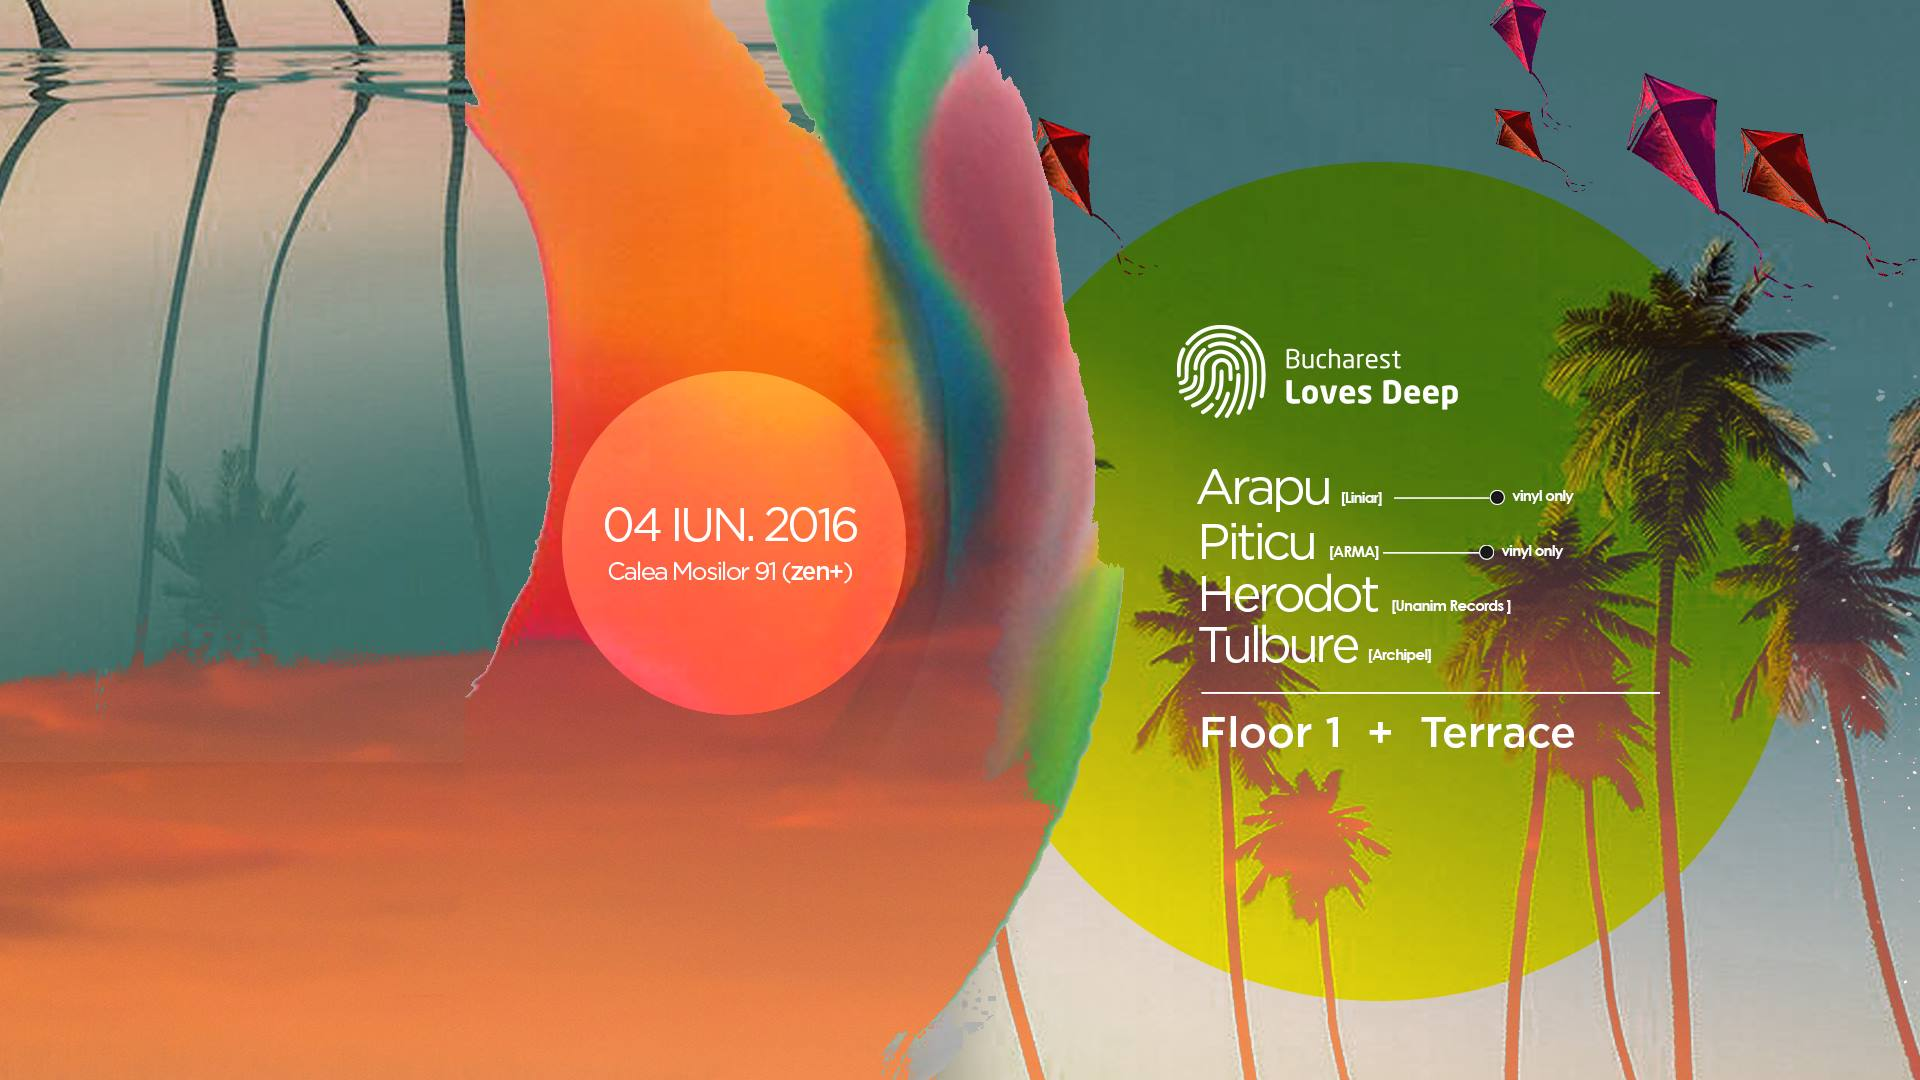 Daytime Party with Arapu & Piticu [ vinyl only ] / Herodot / Tulbure ツ